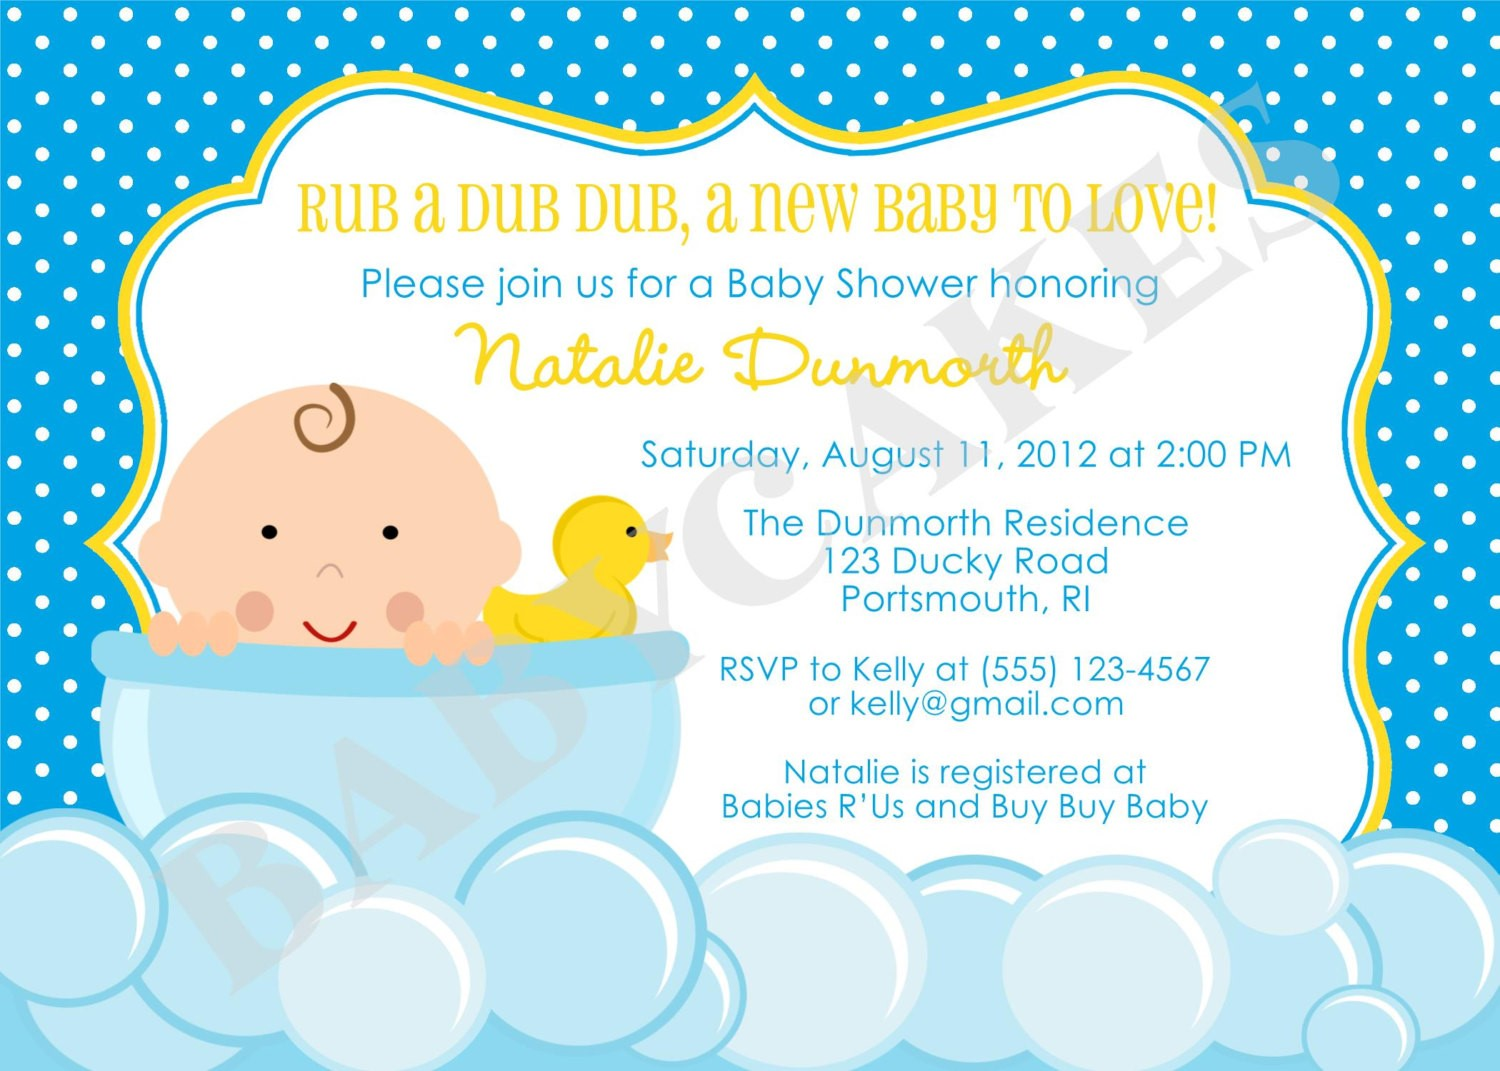 Full Size of Baby Shower:sturdy Baby Shower Invitation Template Image Concepts Baby Shower Invitation Template Invitation For Baby Shower Popular Rubber Duck Baby Shower Invitation For Additional Baby Shower Invitation